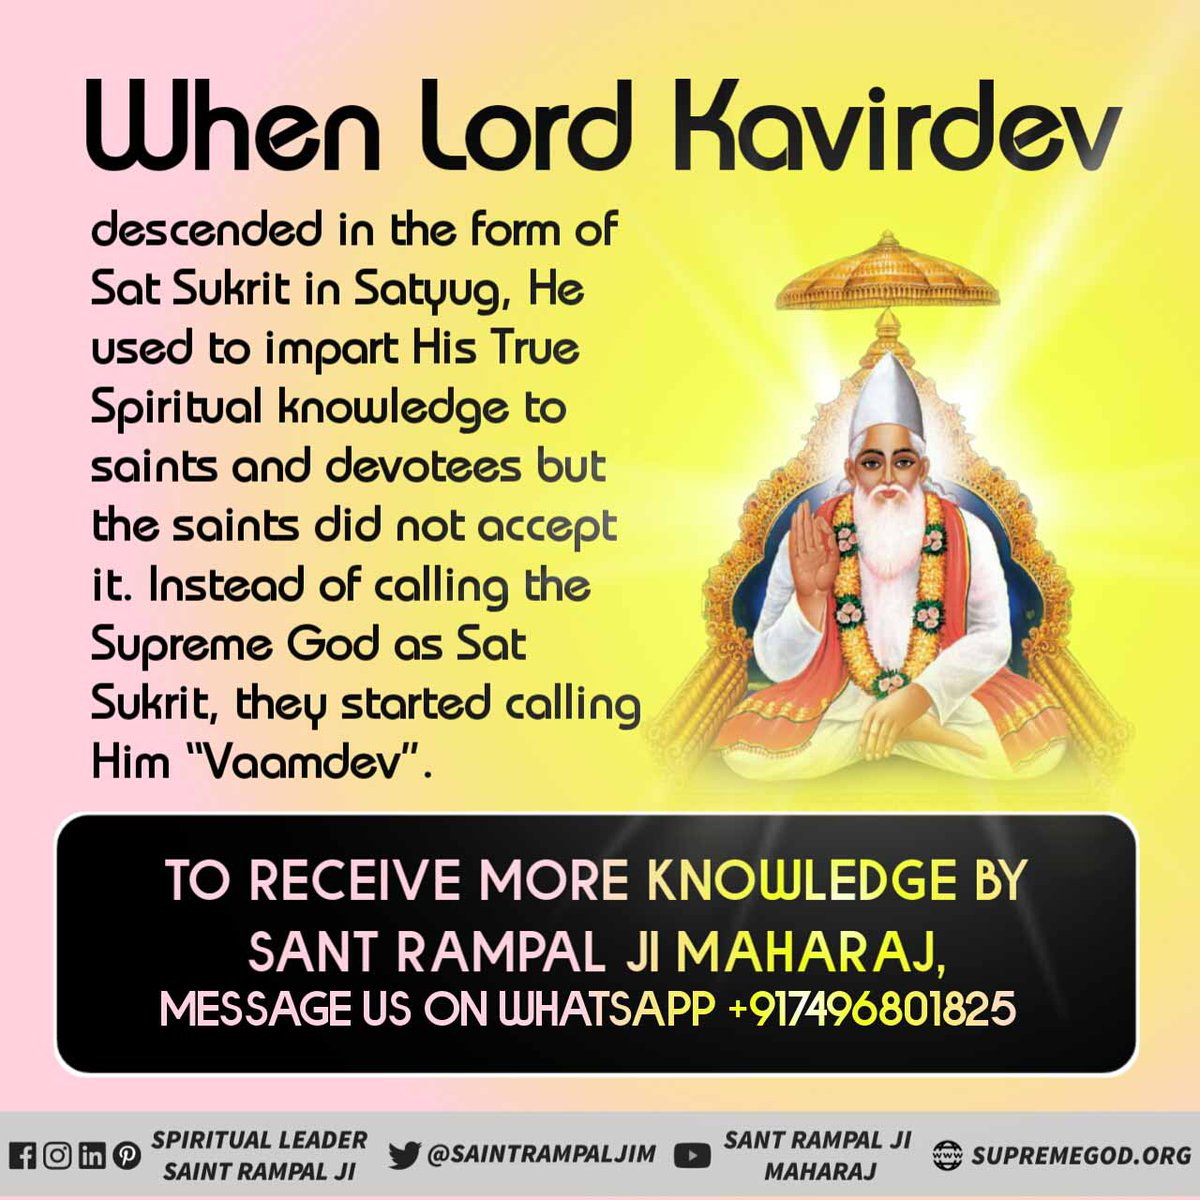 #SupremeGodKabir Kabir saheb says in his nectar speech that among hindu, muslim my name is Kabir and I came here to emancipation of beloved souls. Here it is proved that kabir saheb came here instead of taking birth!... 🍁🍁🍁